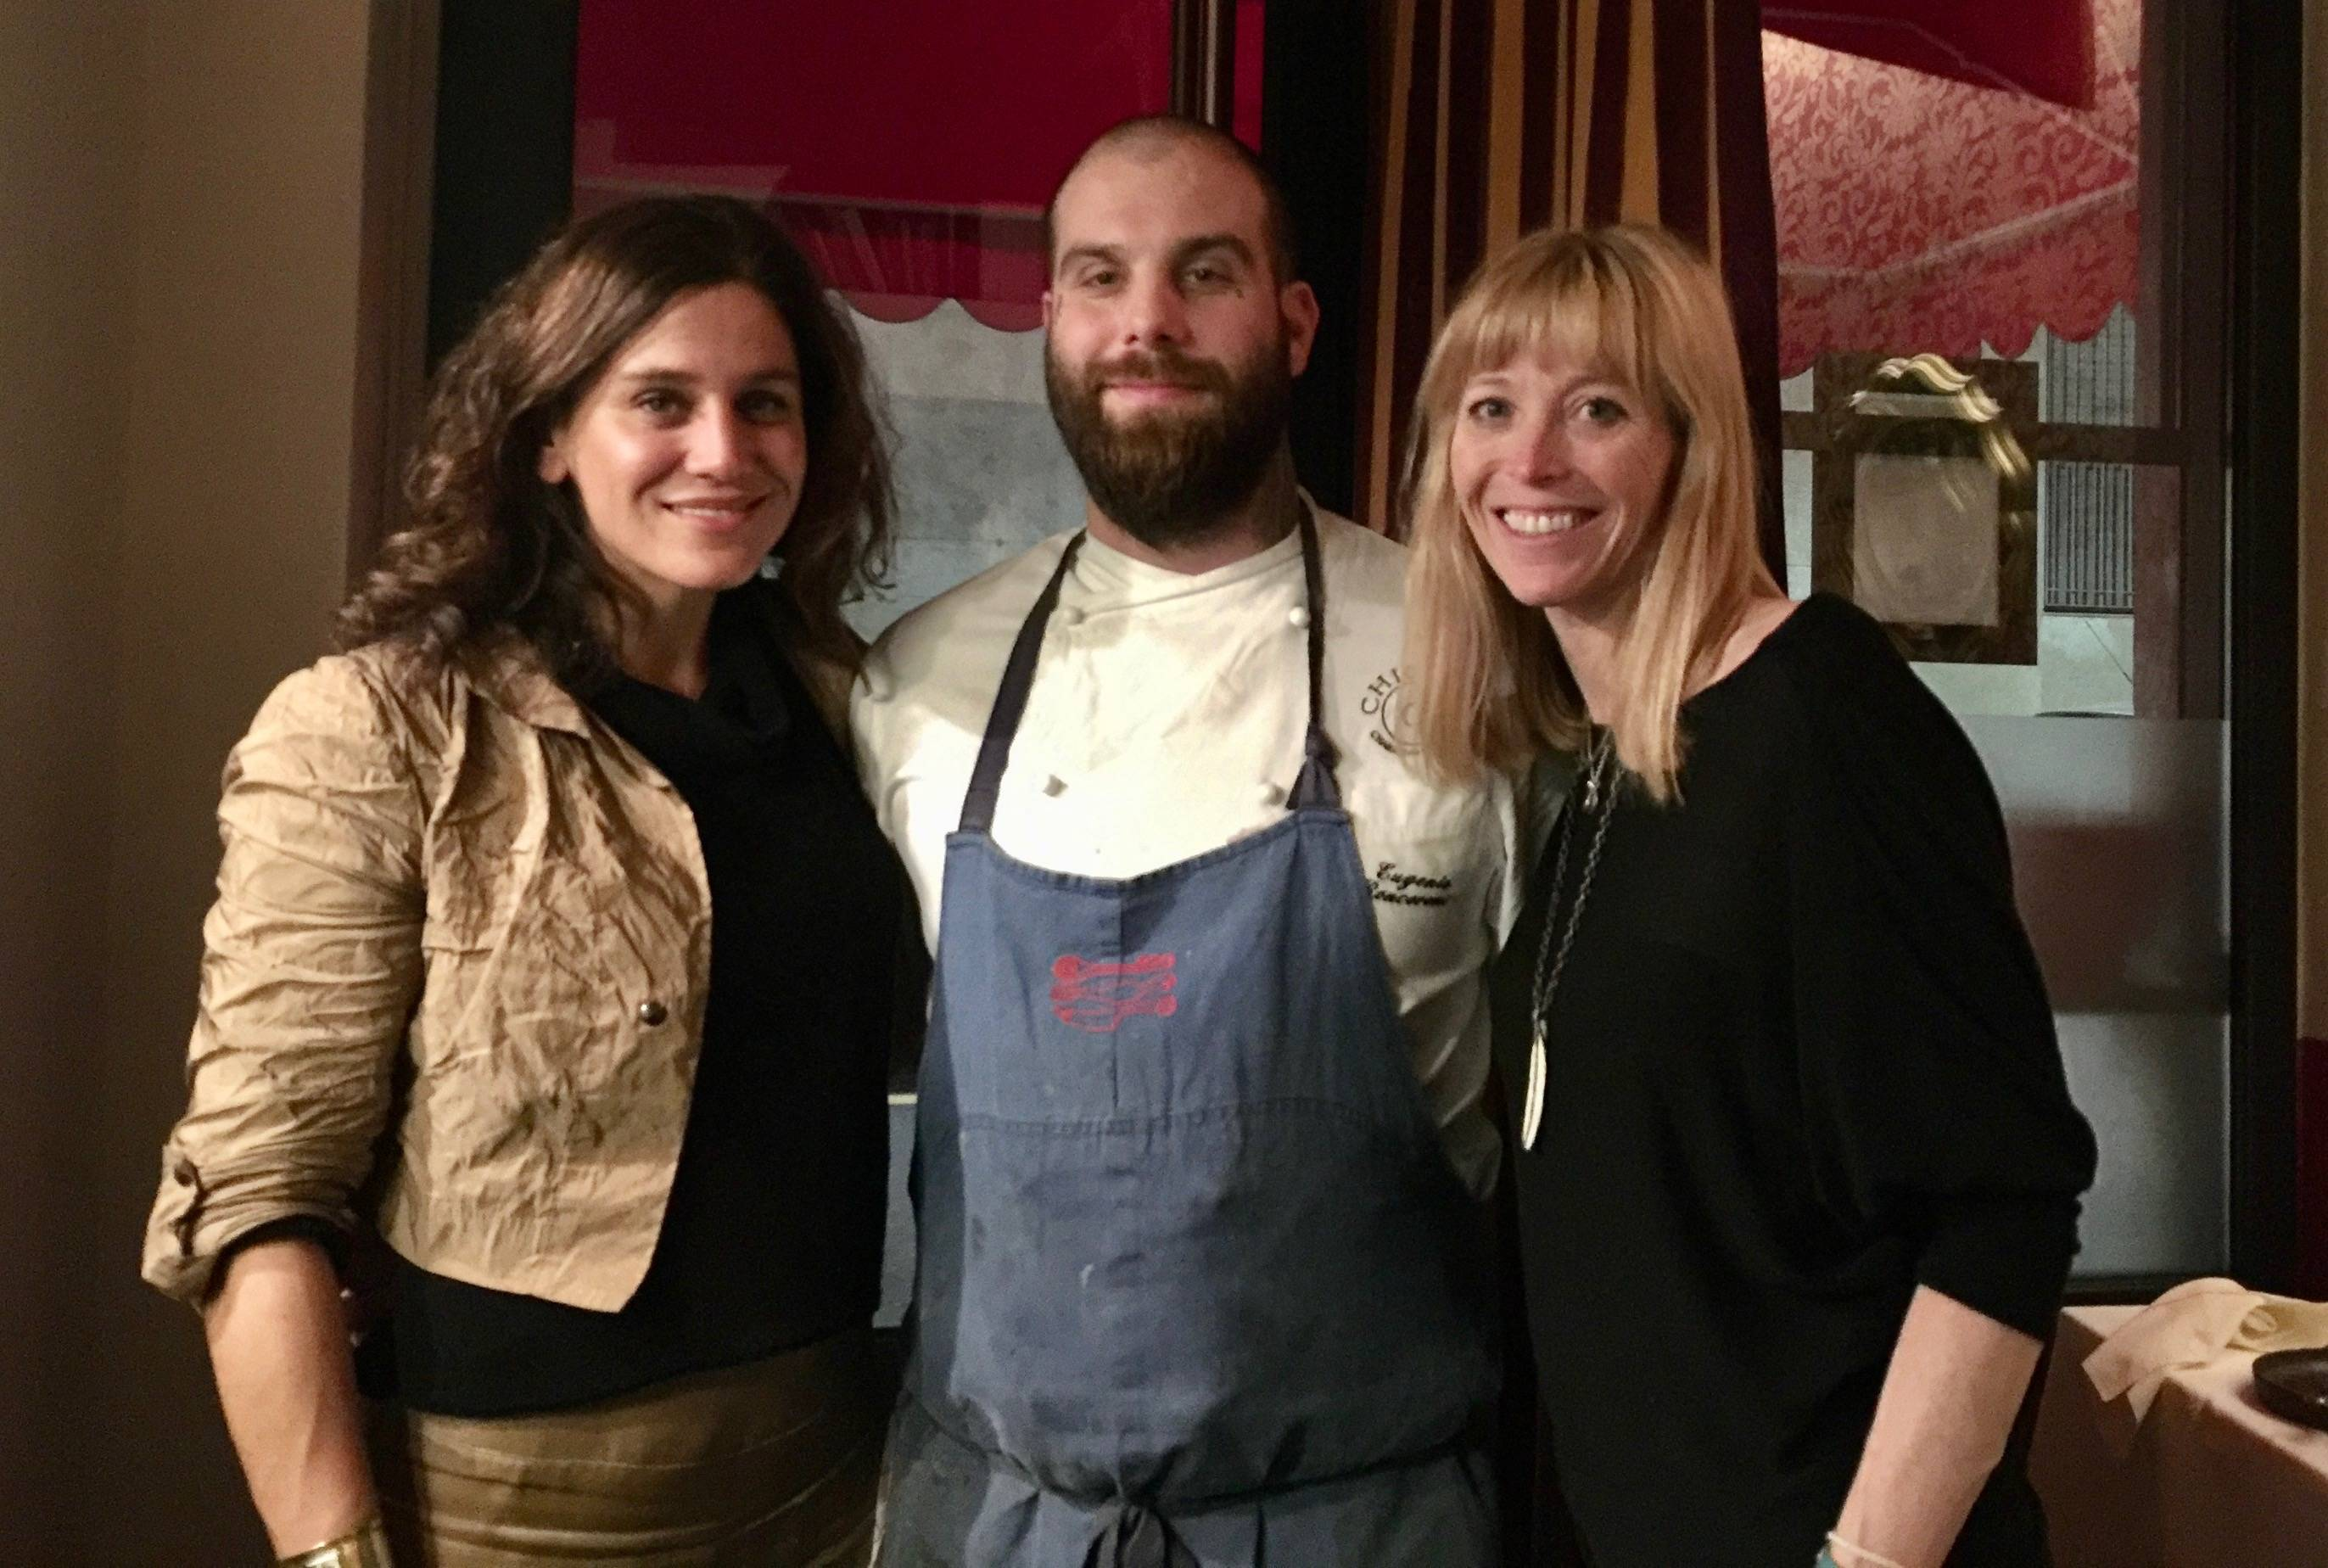 Stick & Ball Founder Elizabeth with her friend Jill and Italian Chef